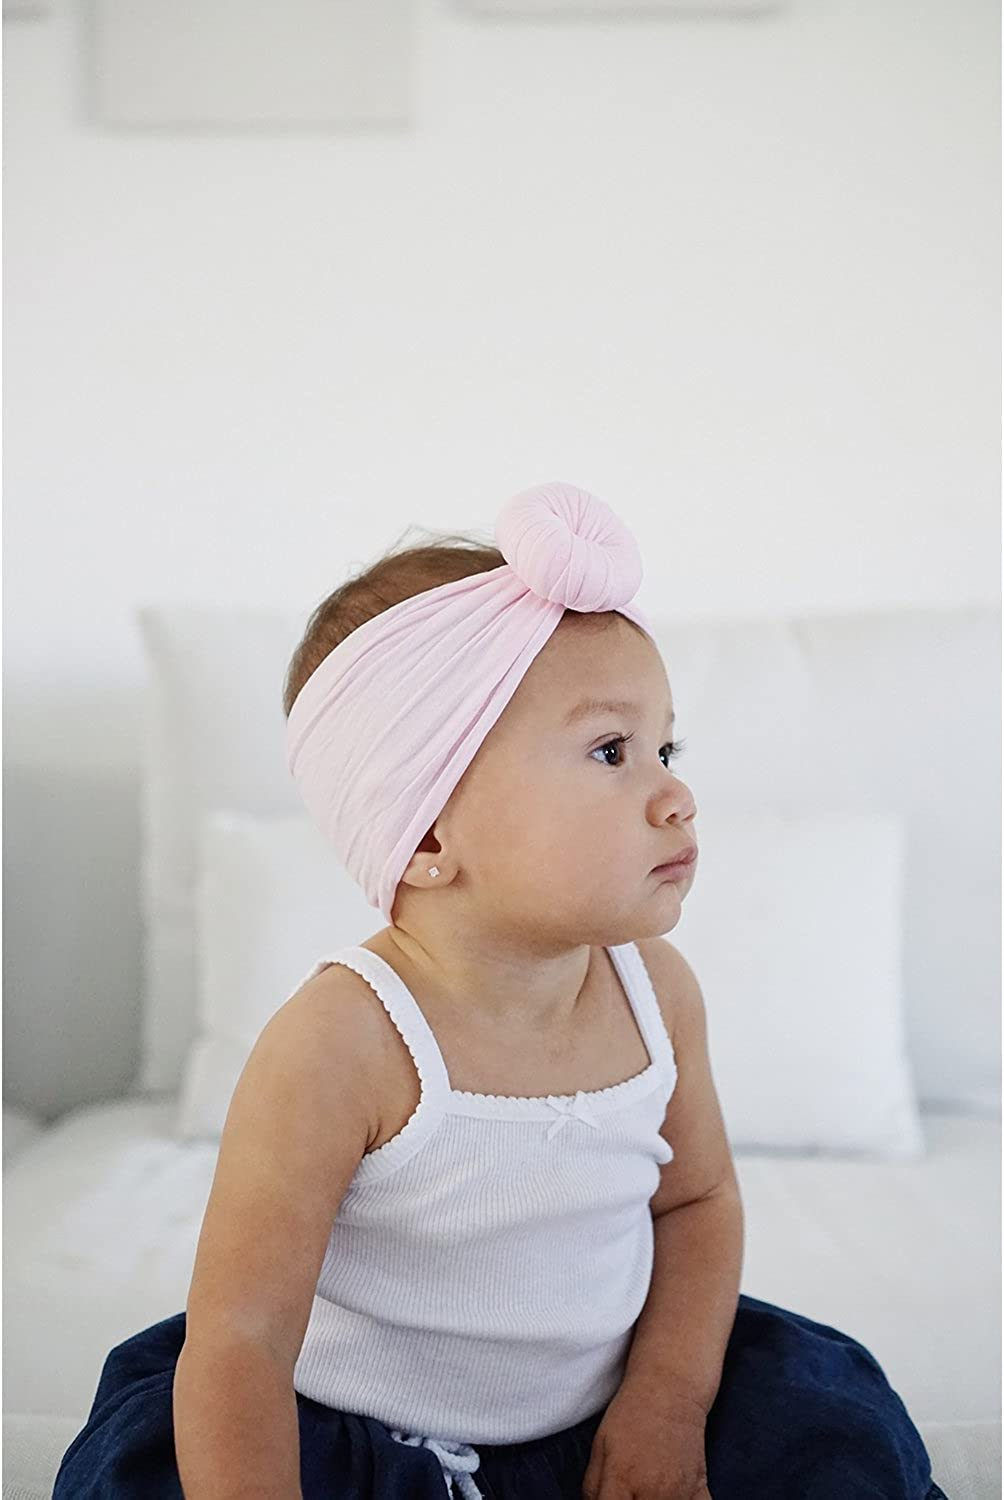 Solid Colors Infant Toddler Cute Baby Rabbit Ear Hair bands for Newborn Baby Girls Headbands Knotted Girls and Children KECUCO 8 Pack Baby Turban Headband and Bows